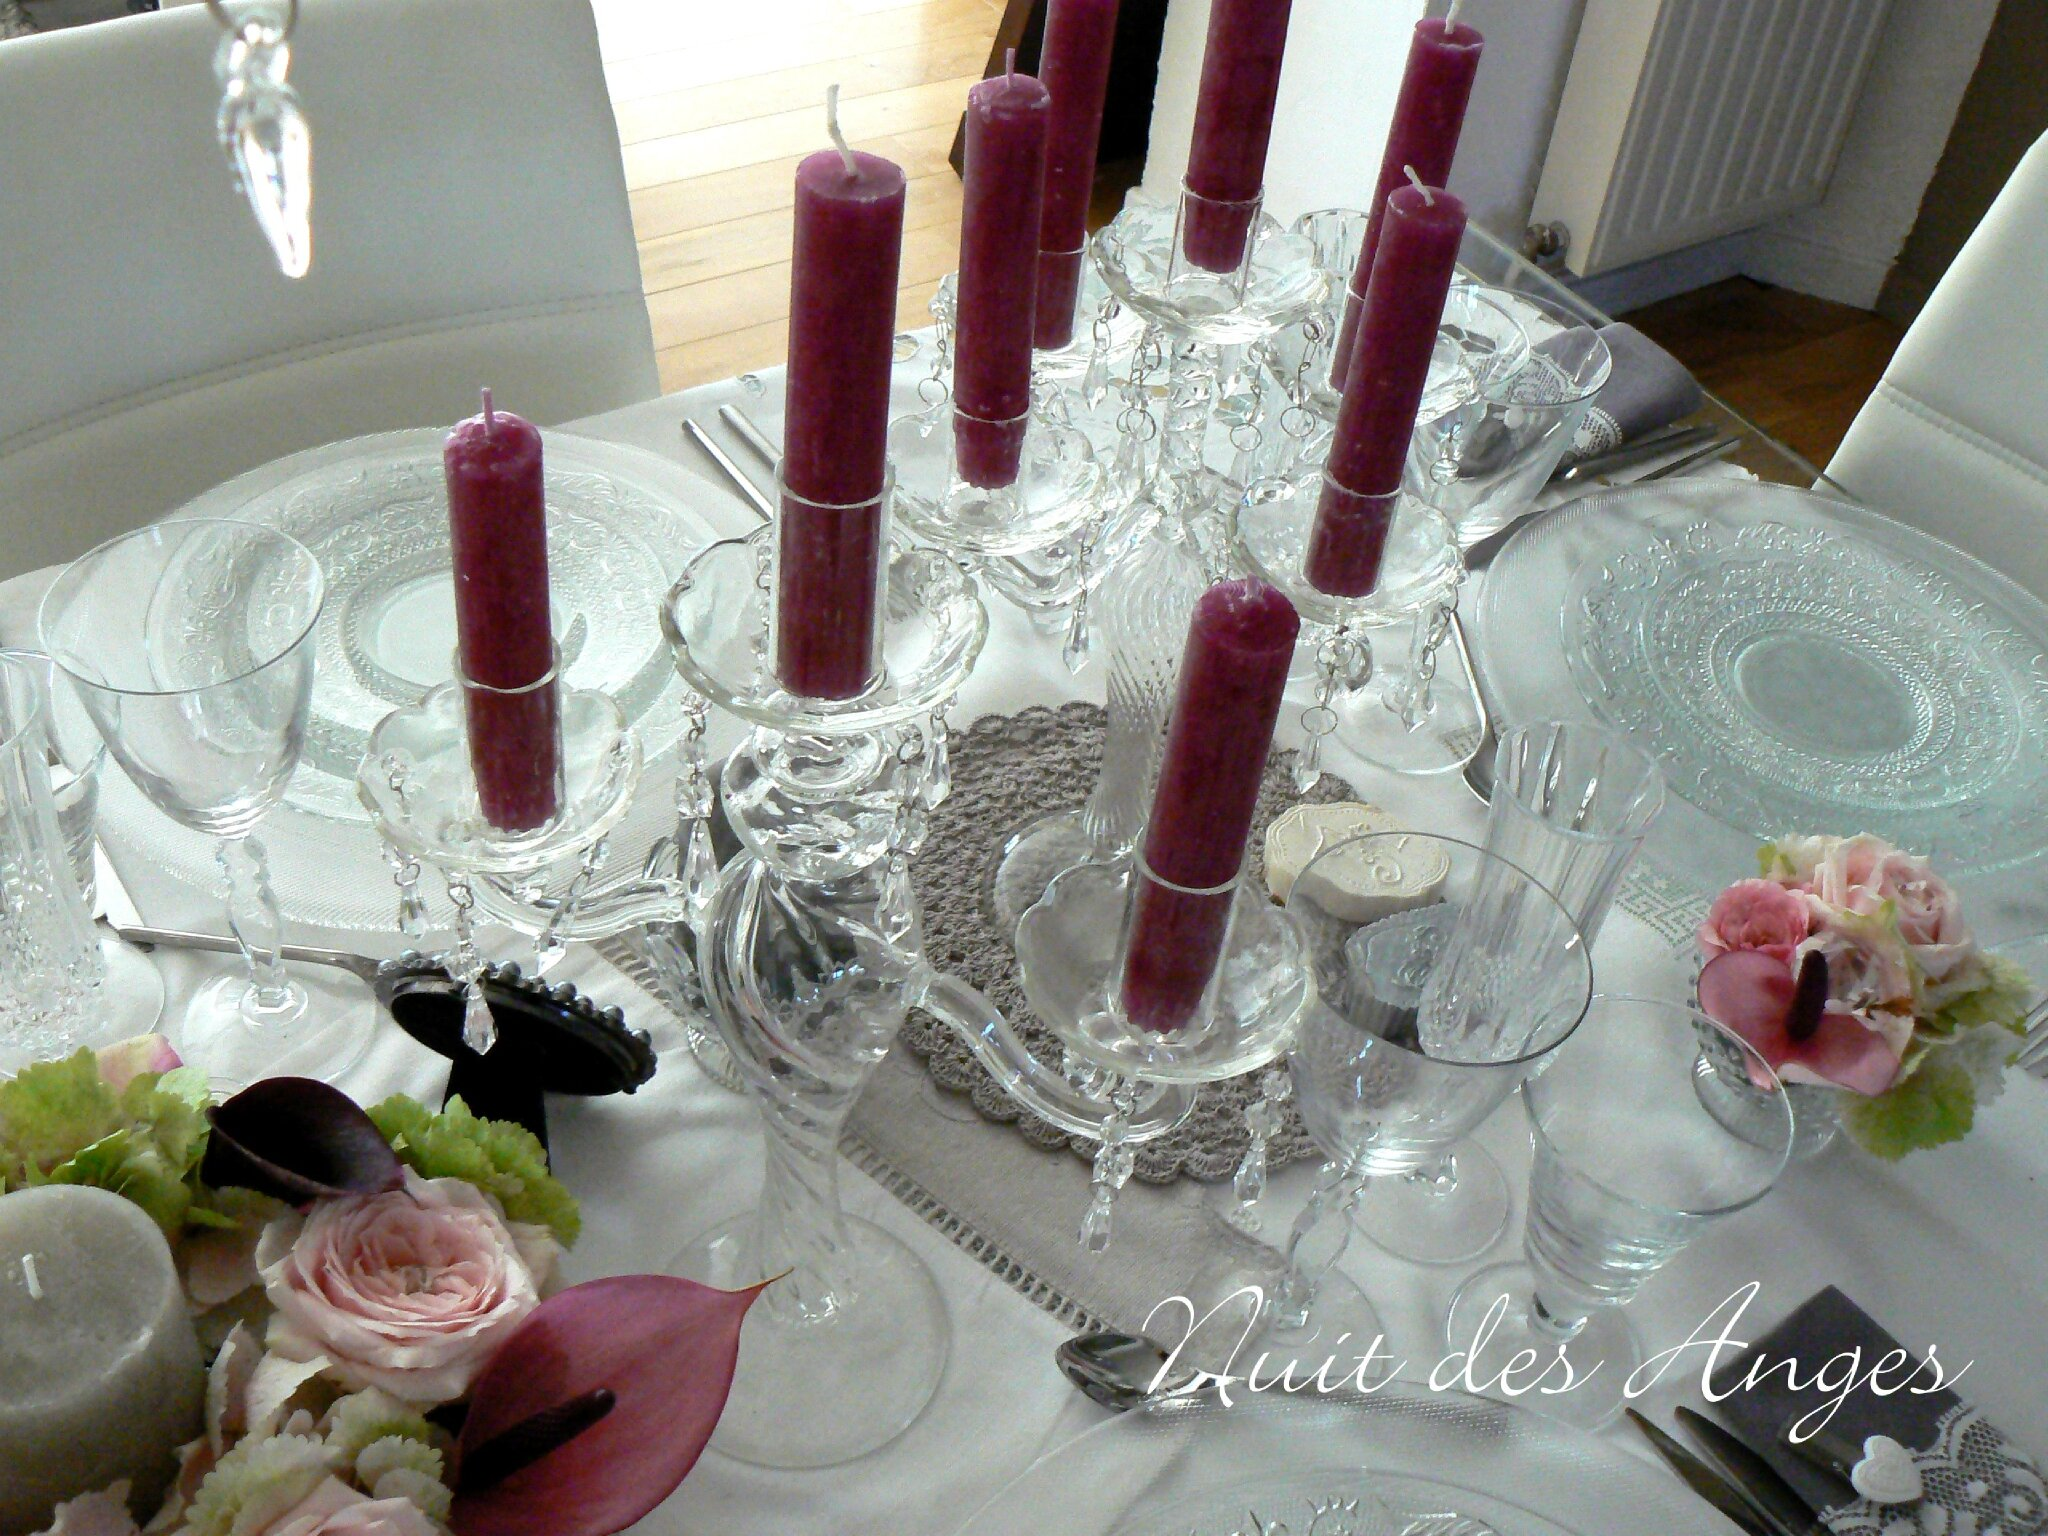 nuit des anges d coratrice de mariage d coration de table f rique romantique 007 photo de. Black Bedroom Furniture Sets. Home Design Ideas